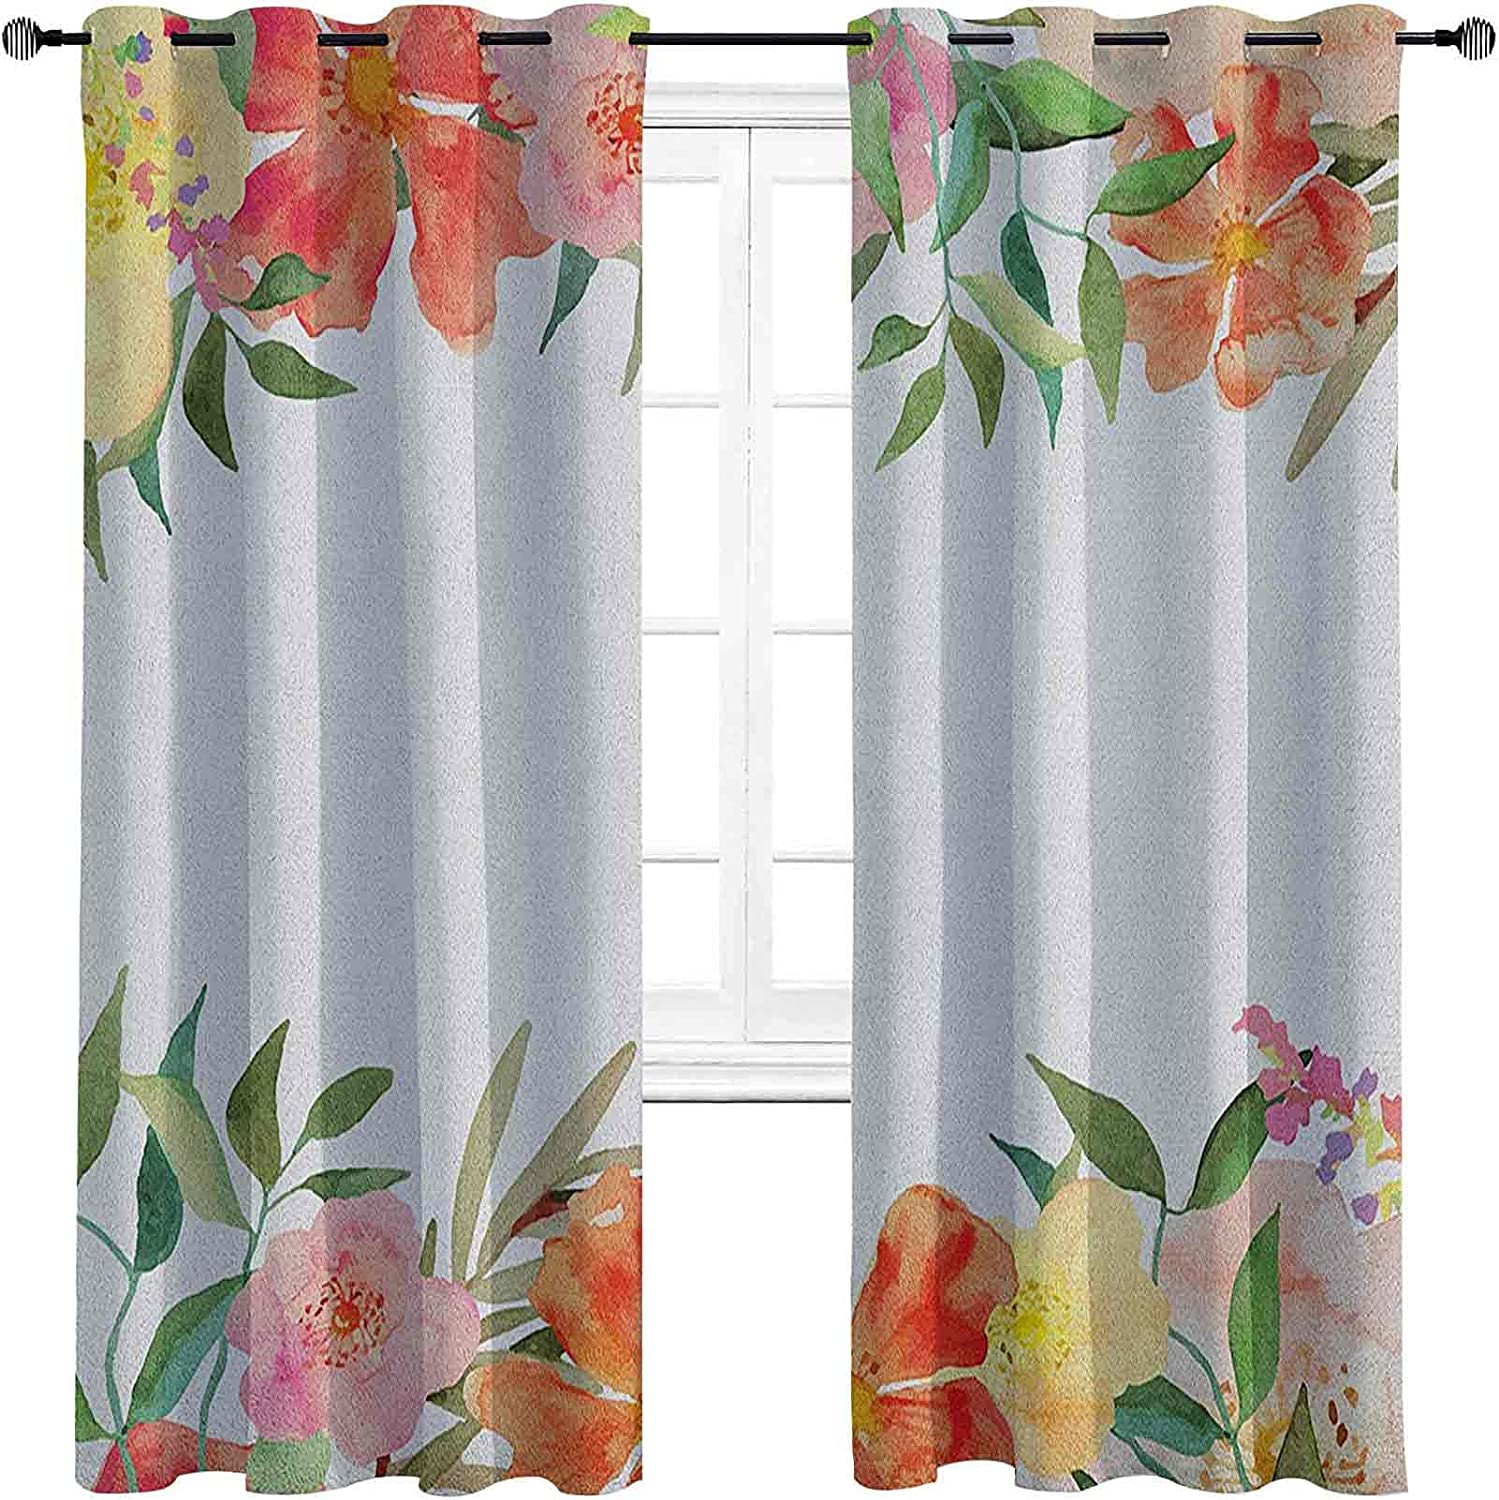 NEW before selling Floral 90%-99% Blackout Lining safety Curtain Soft Flower with Petals